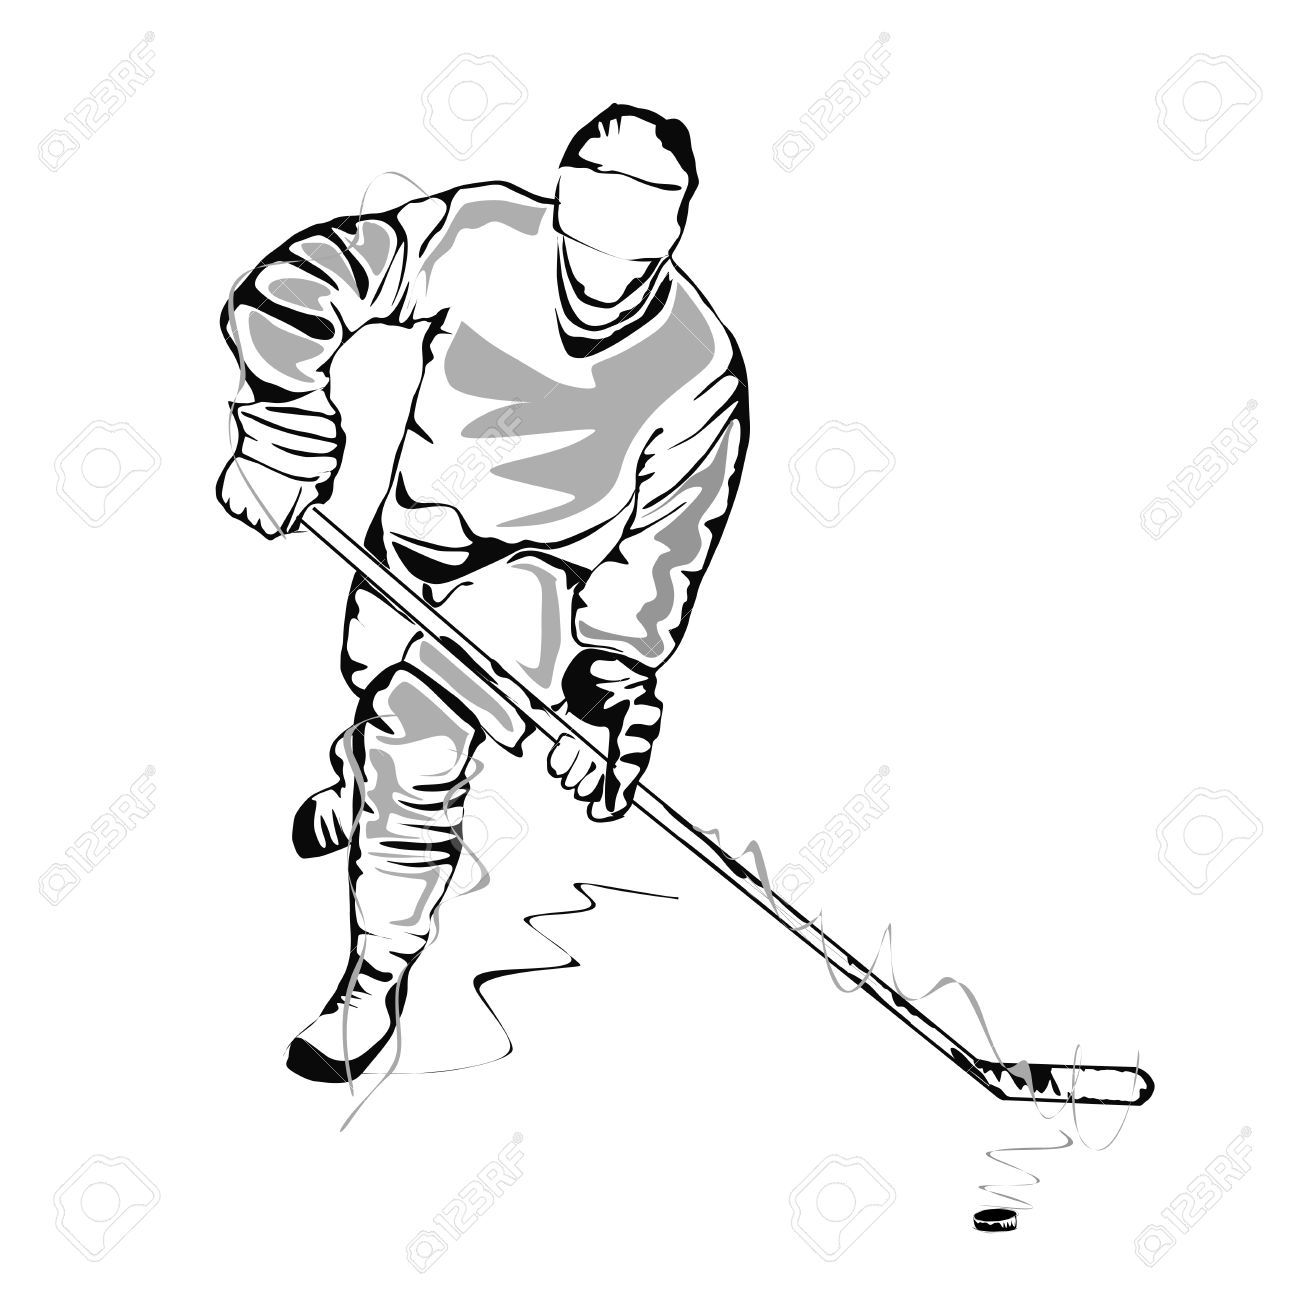 Hockey Player Sketch Royalty Free Cliparts Vectors And